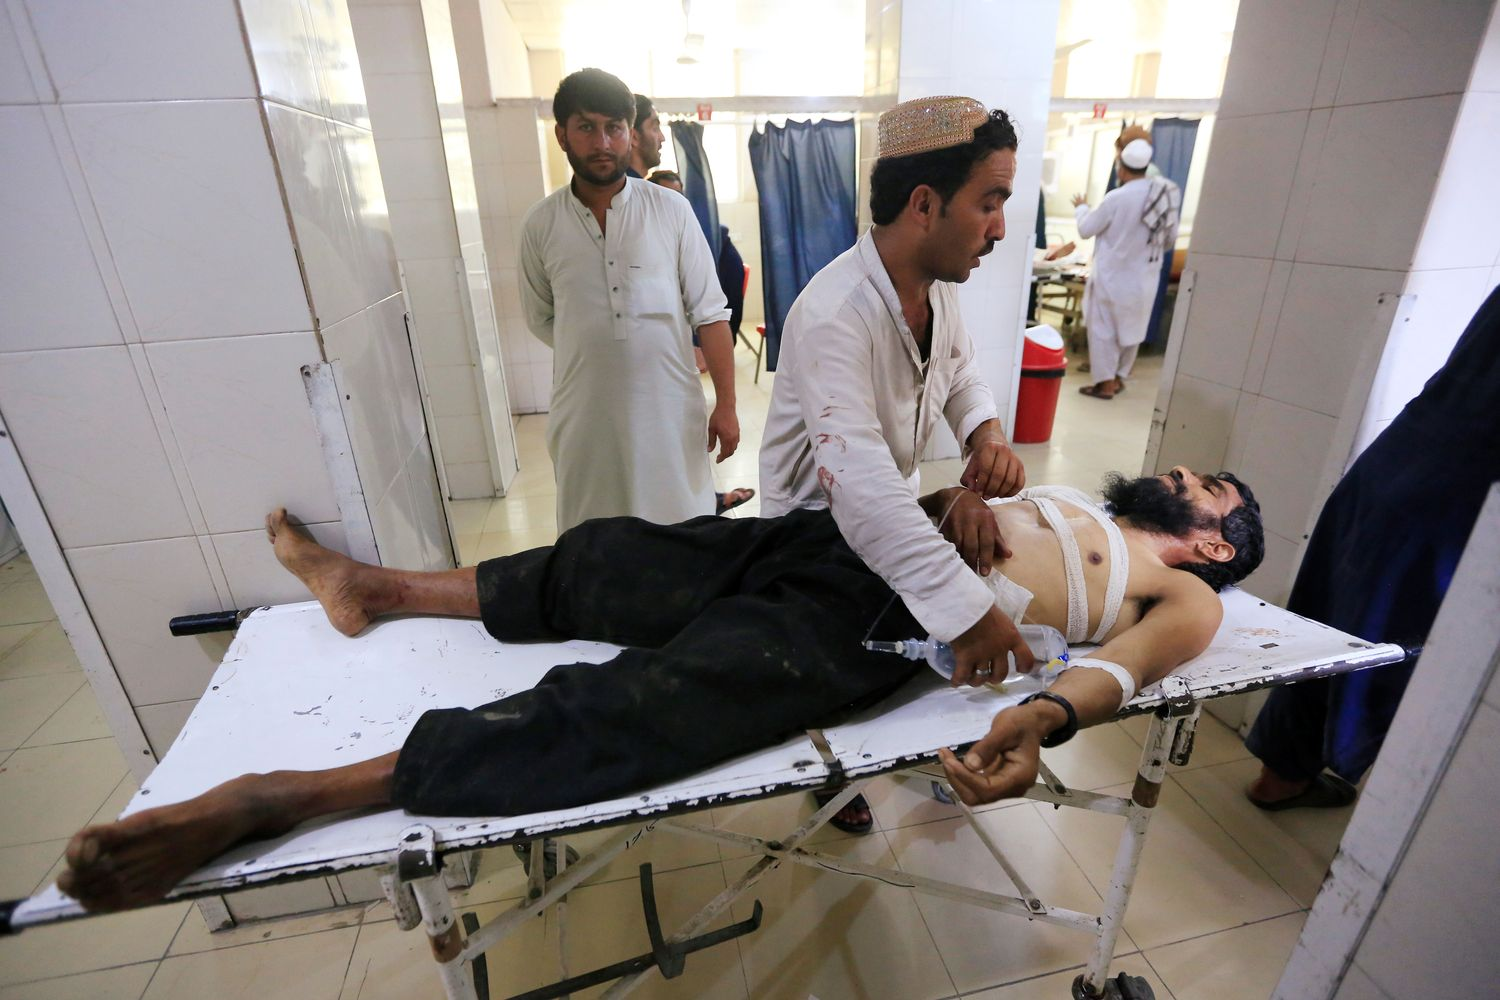 An injured man receives treatment at the hospital, after a suicide attack in Jalalabad, Afghanistan, on Friday. (Reuters photo)